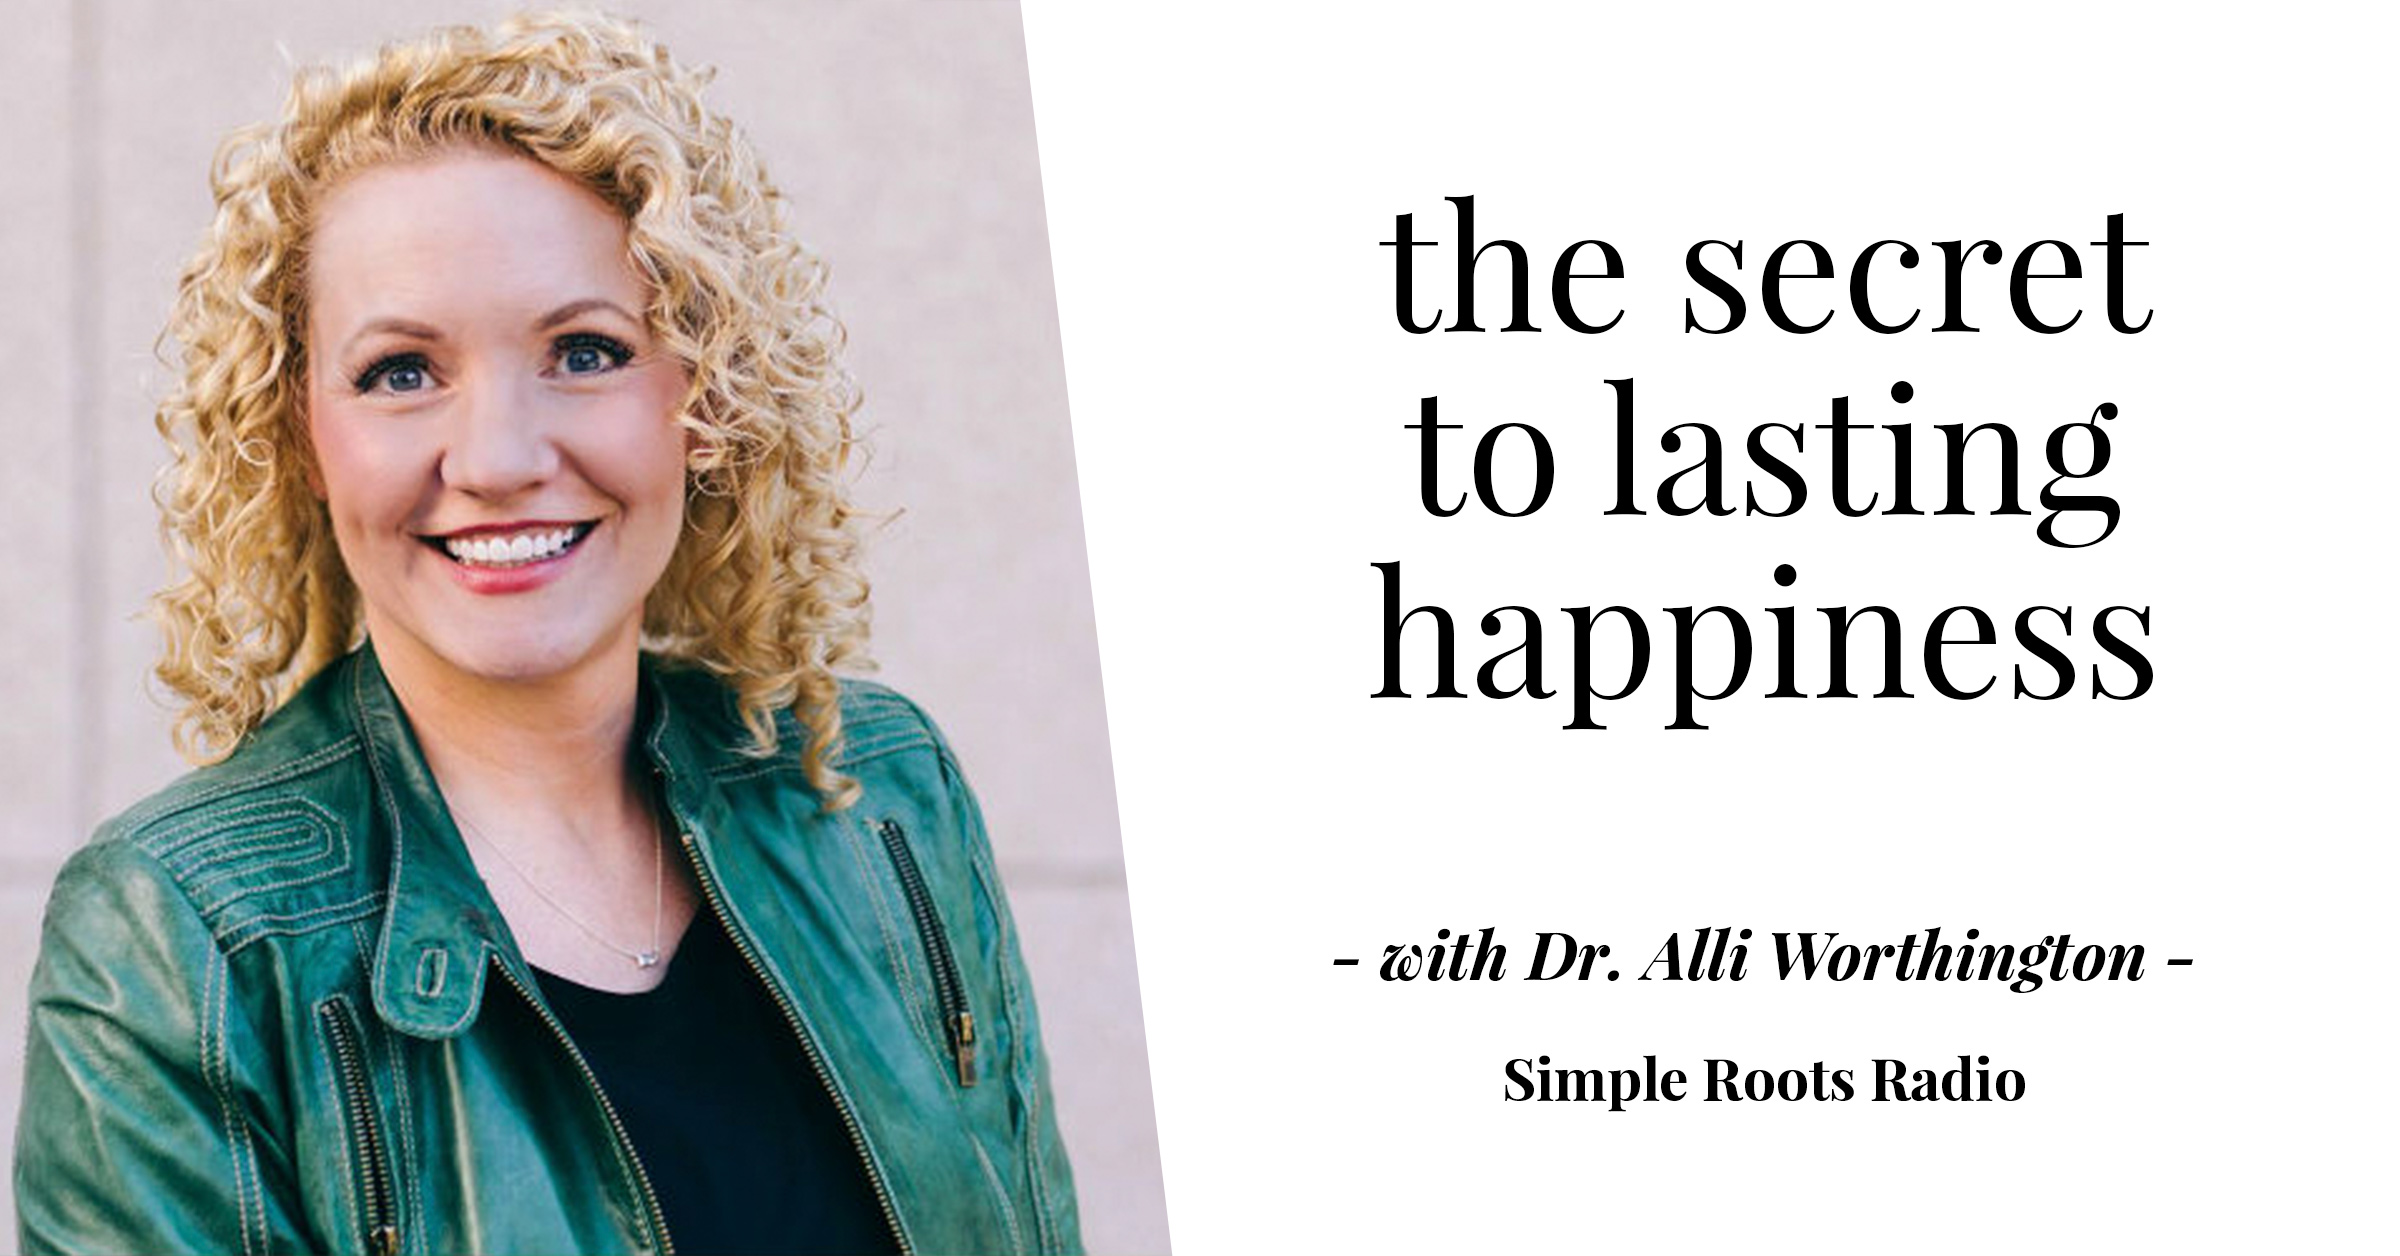 The Secret of Lasting Happiness | simplerootswellness.com #podcast #happiness #health #easy #joy